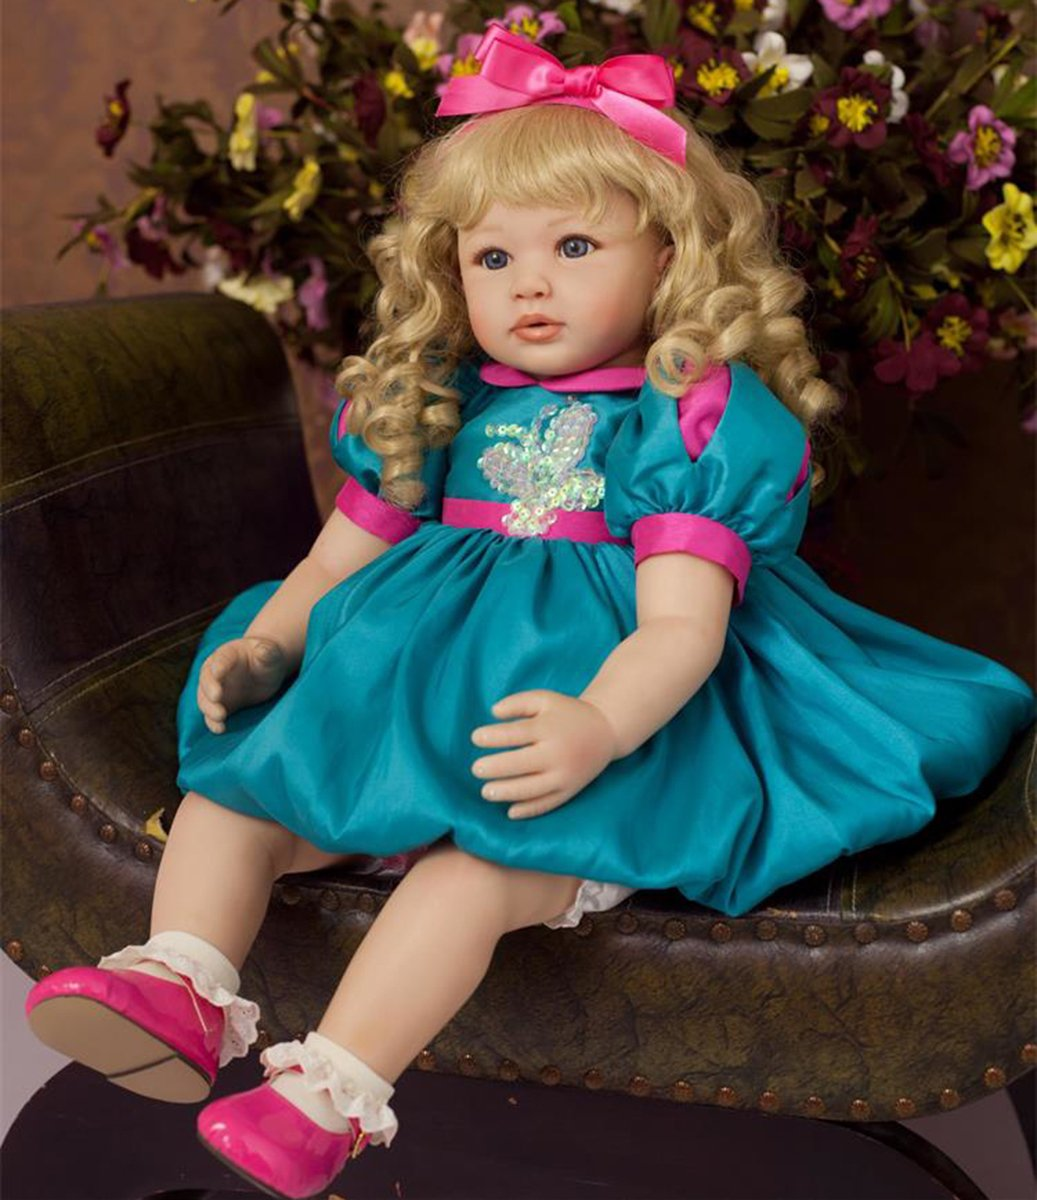 Pursue Baby Beautiful Real Life Princess Girl Doll Weighted for Cuddle, Green Princess Isabella, 24 Inch Lifelike Poseable Toddler Doll Gift for Christmas by Pursue Baby